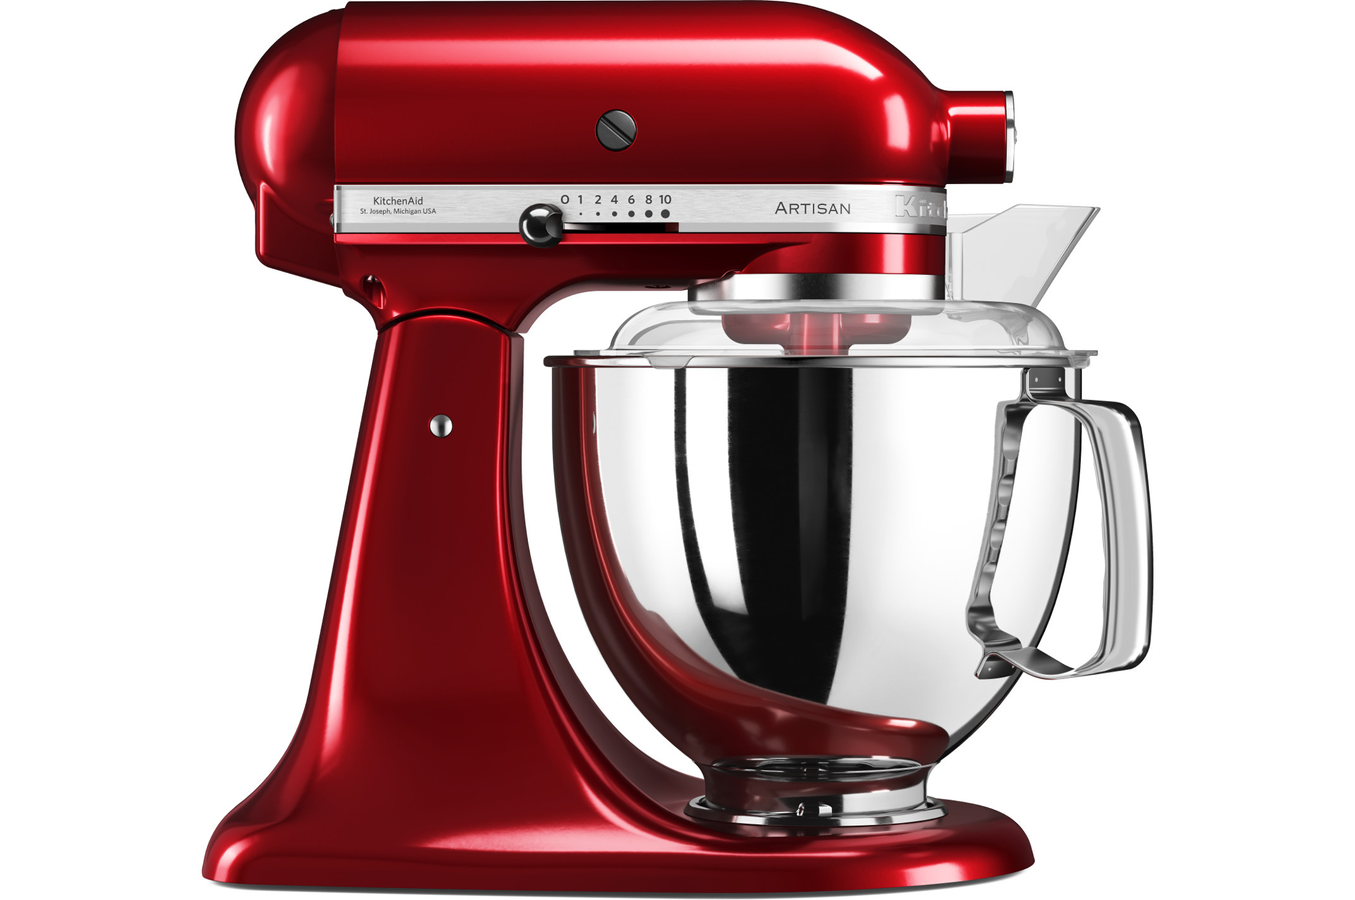 robot patissier kitchenaid artisan elegance 5ksm175pseca pomme damour artisan elegance. Black Bedroom Furniture Sets. Home Design Ideas